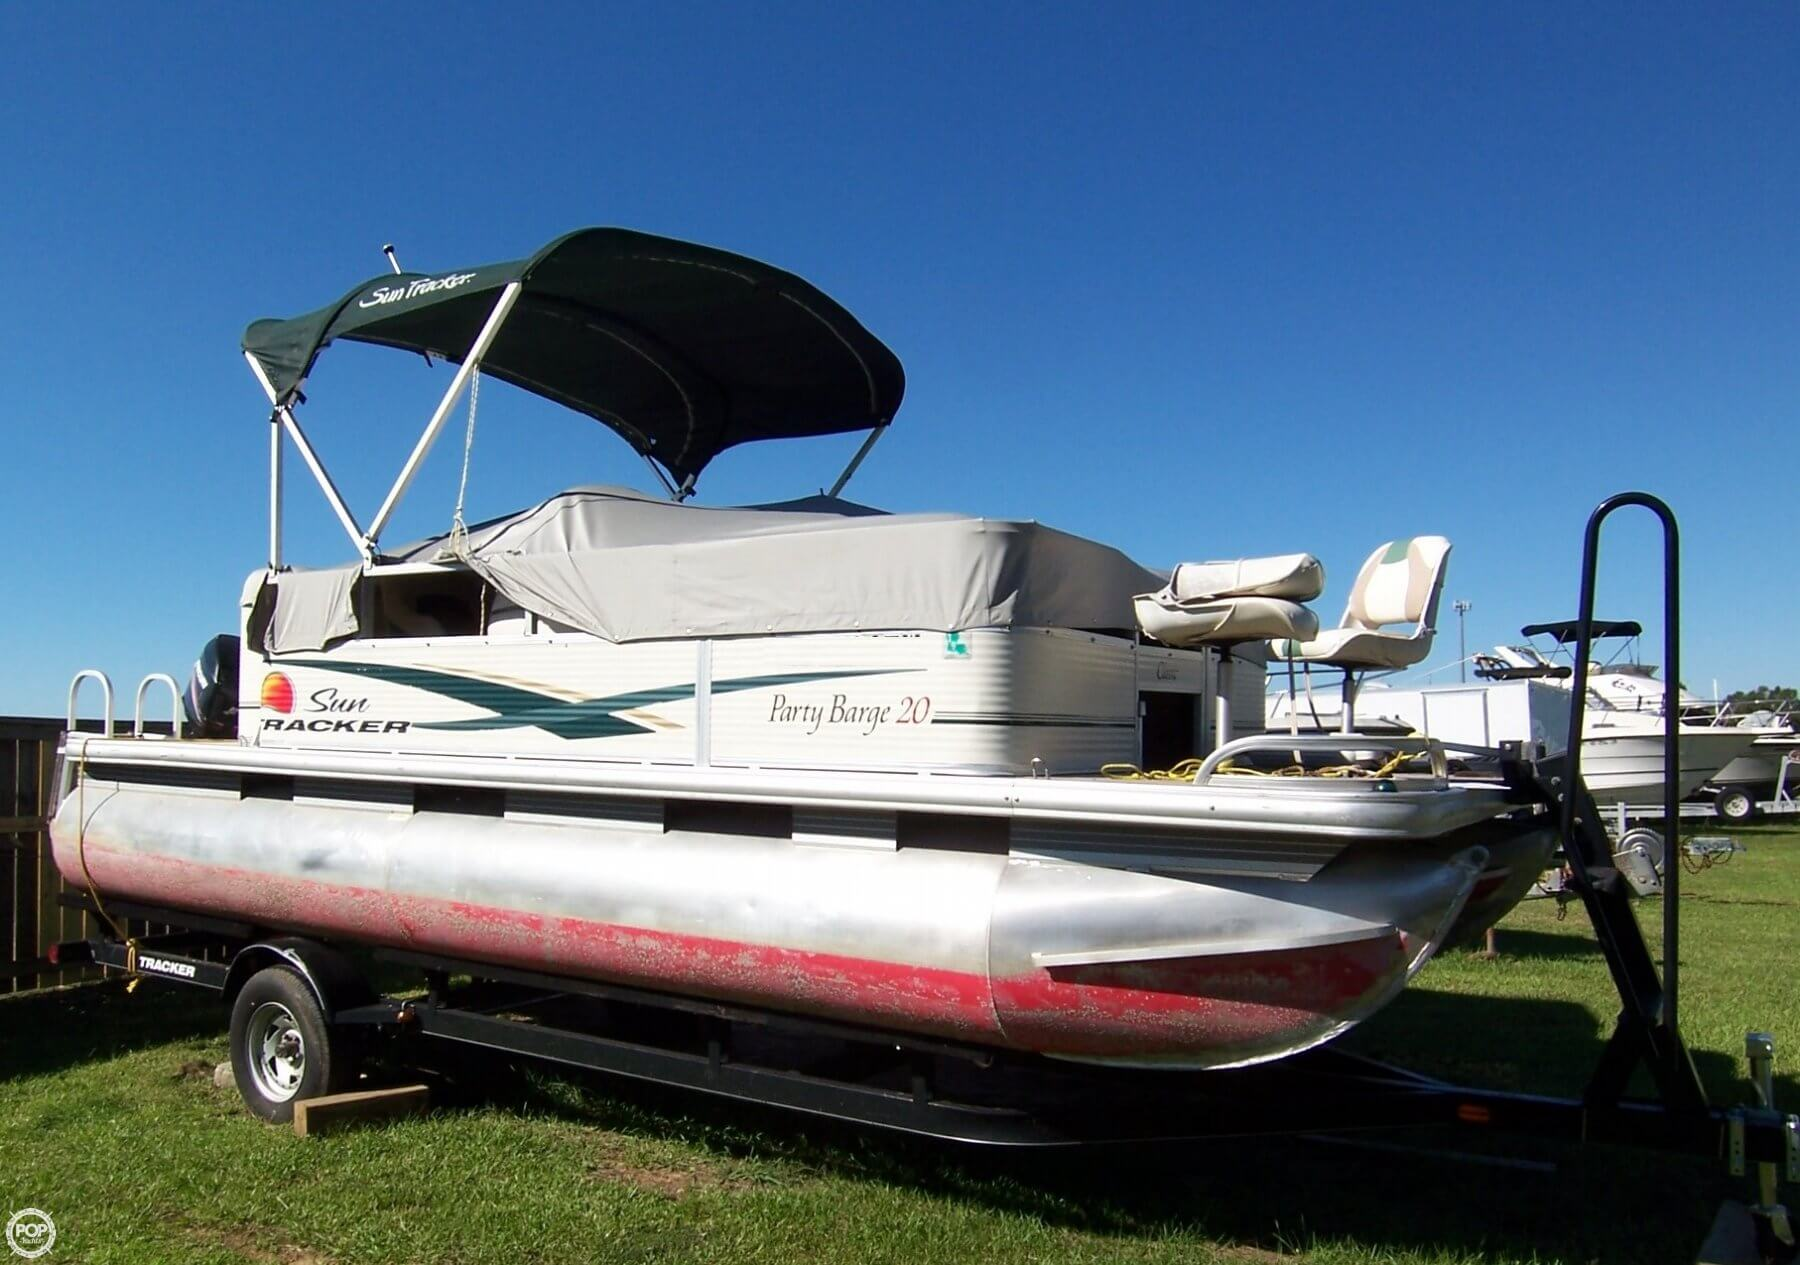 Sun Tracker Pontoon Boats >> Party Barge 20 Classic